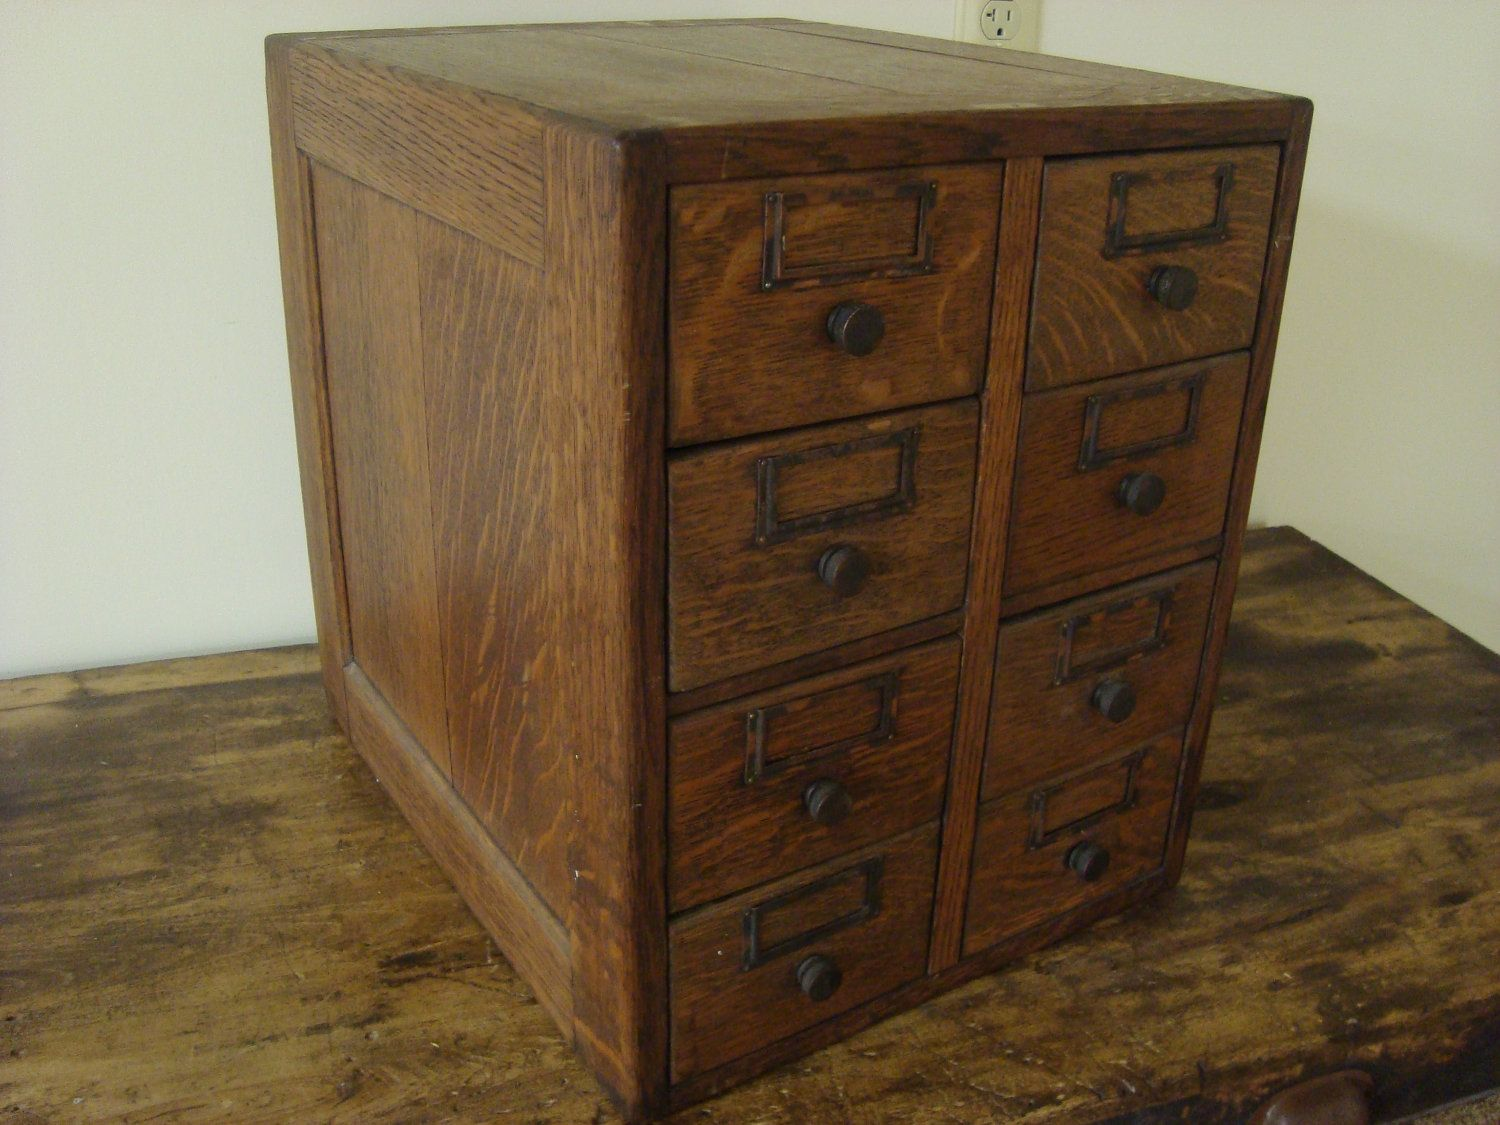 Antique Oak Library Card Catalog 8 Drawer File Recipe Box